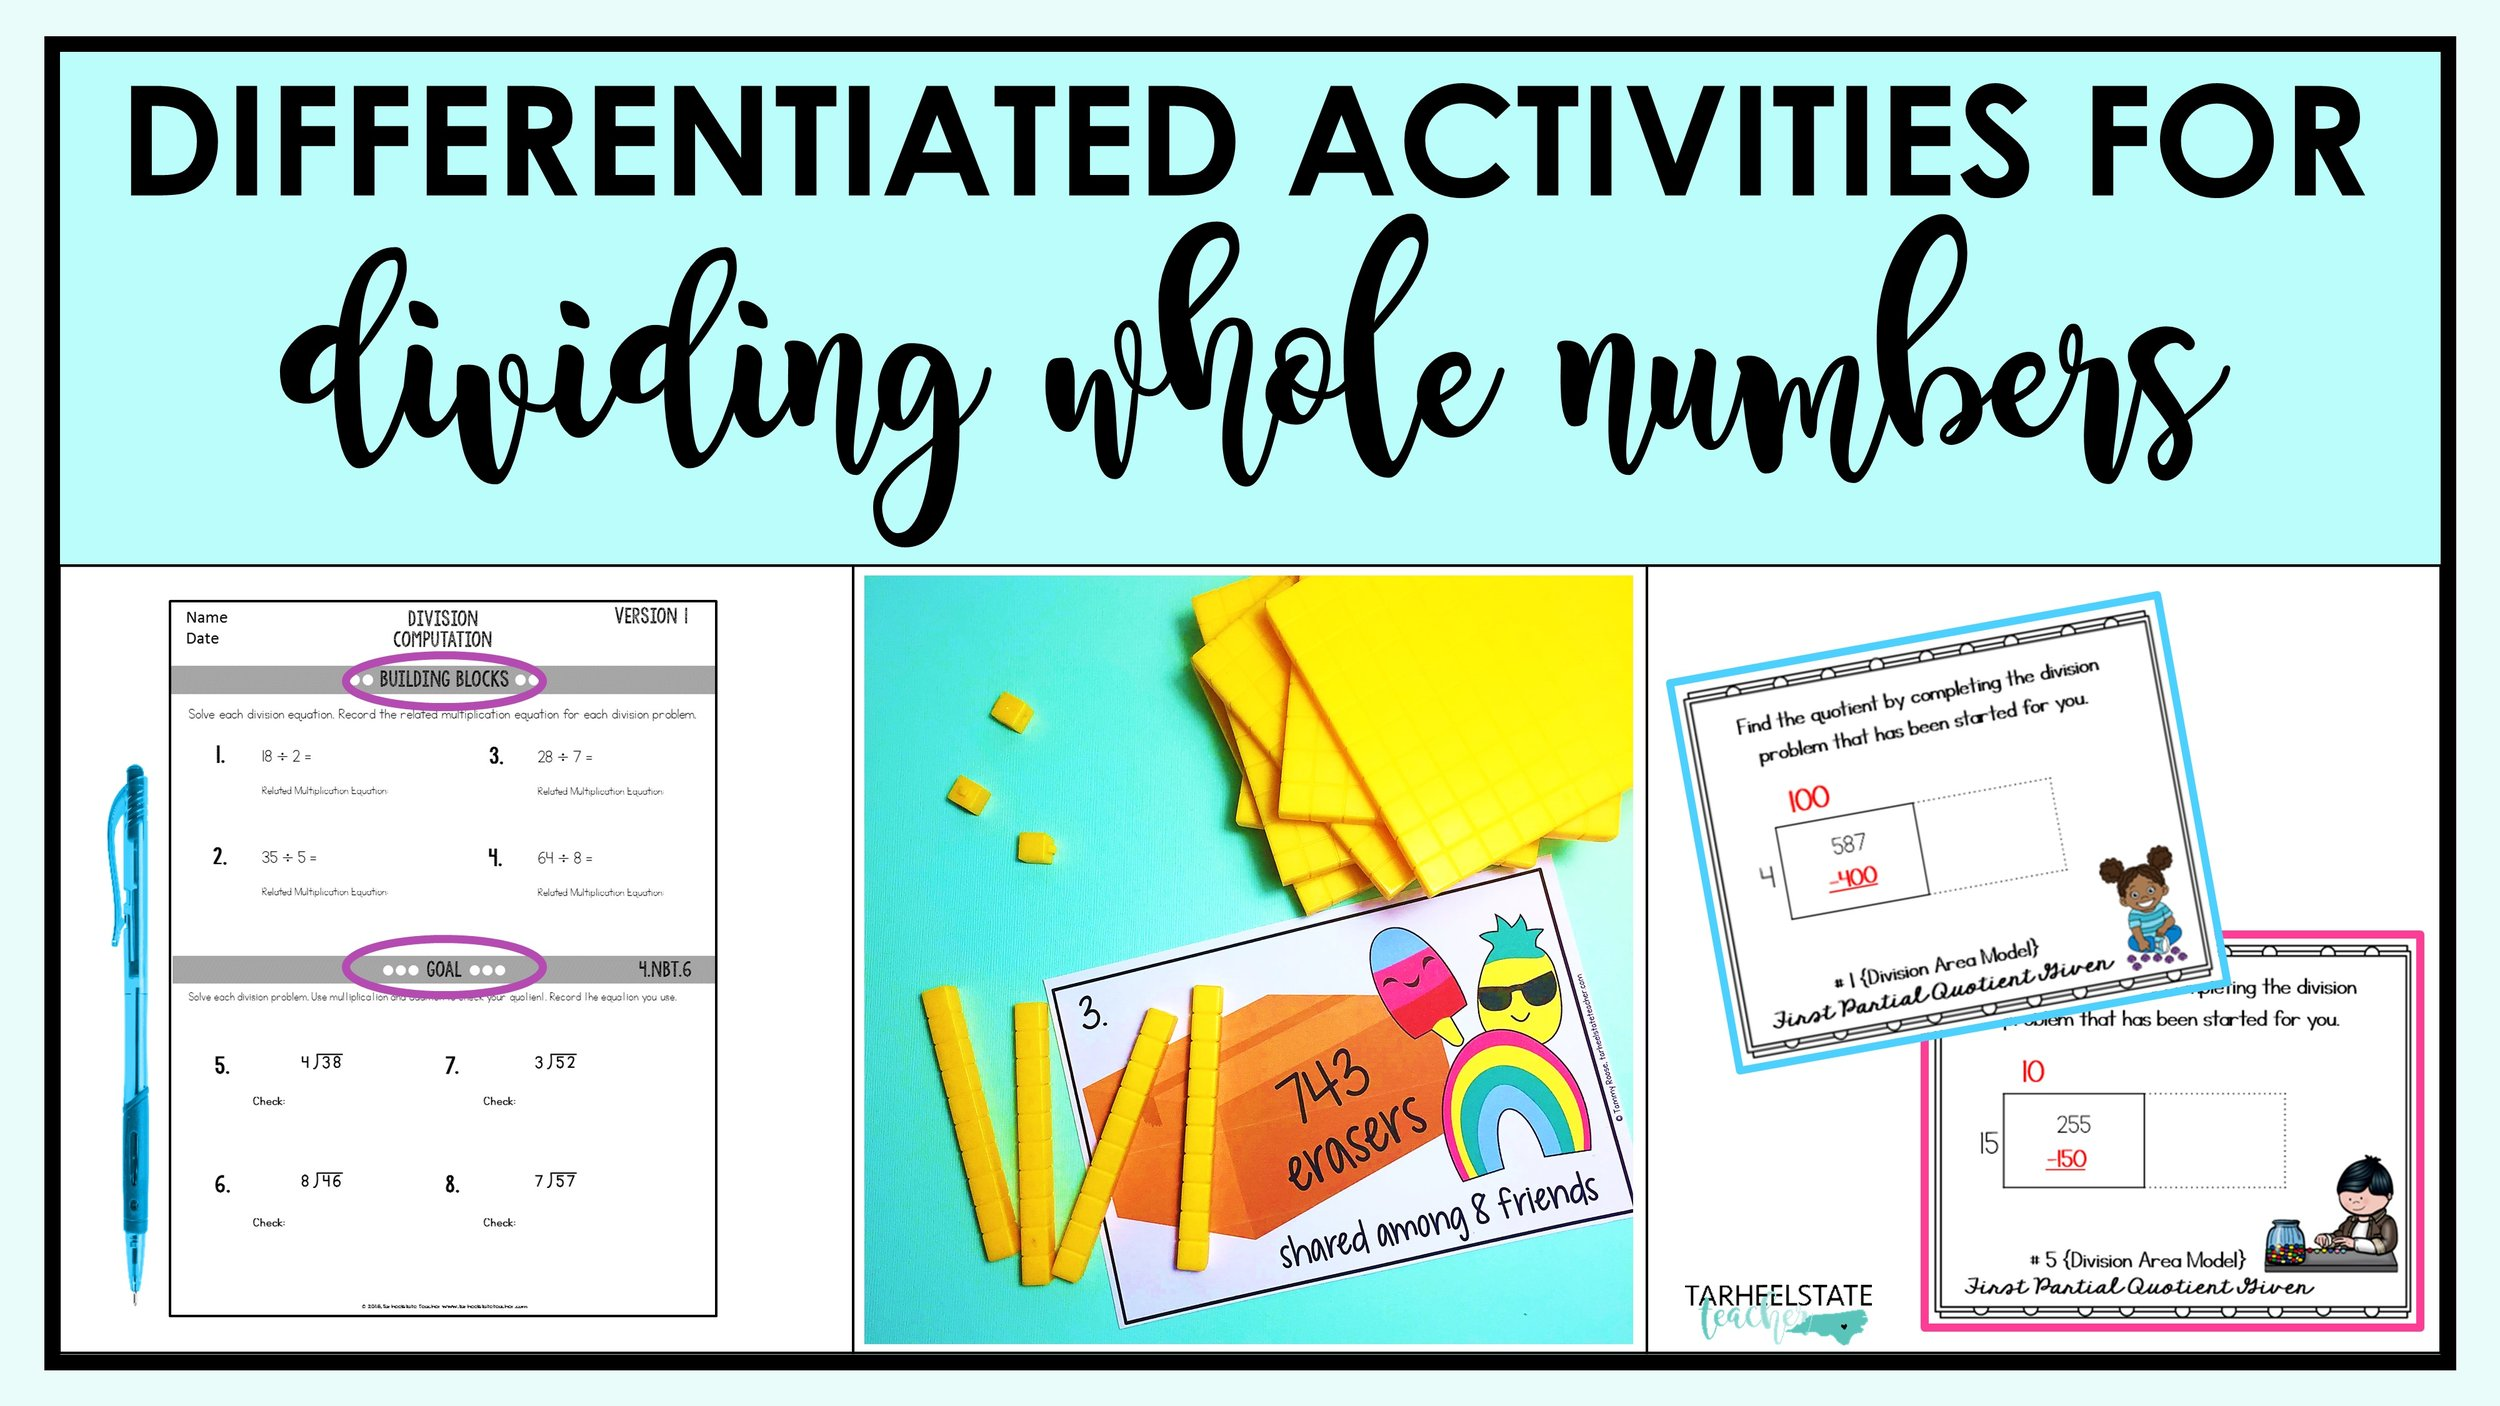 activities for dividing whole numbers.JPG